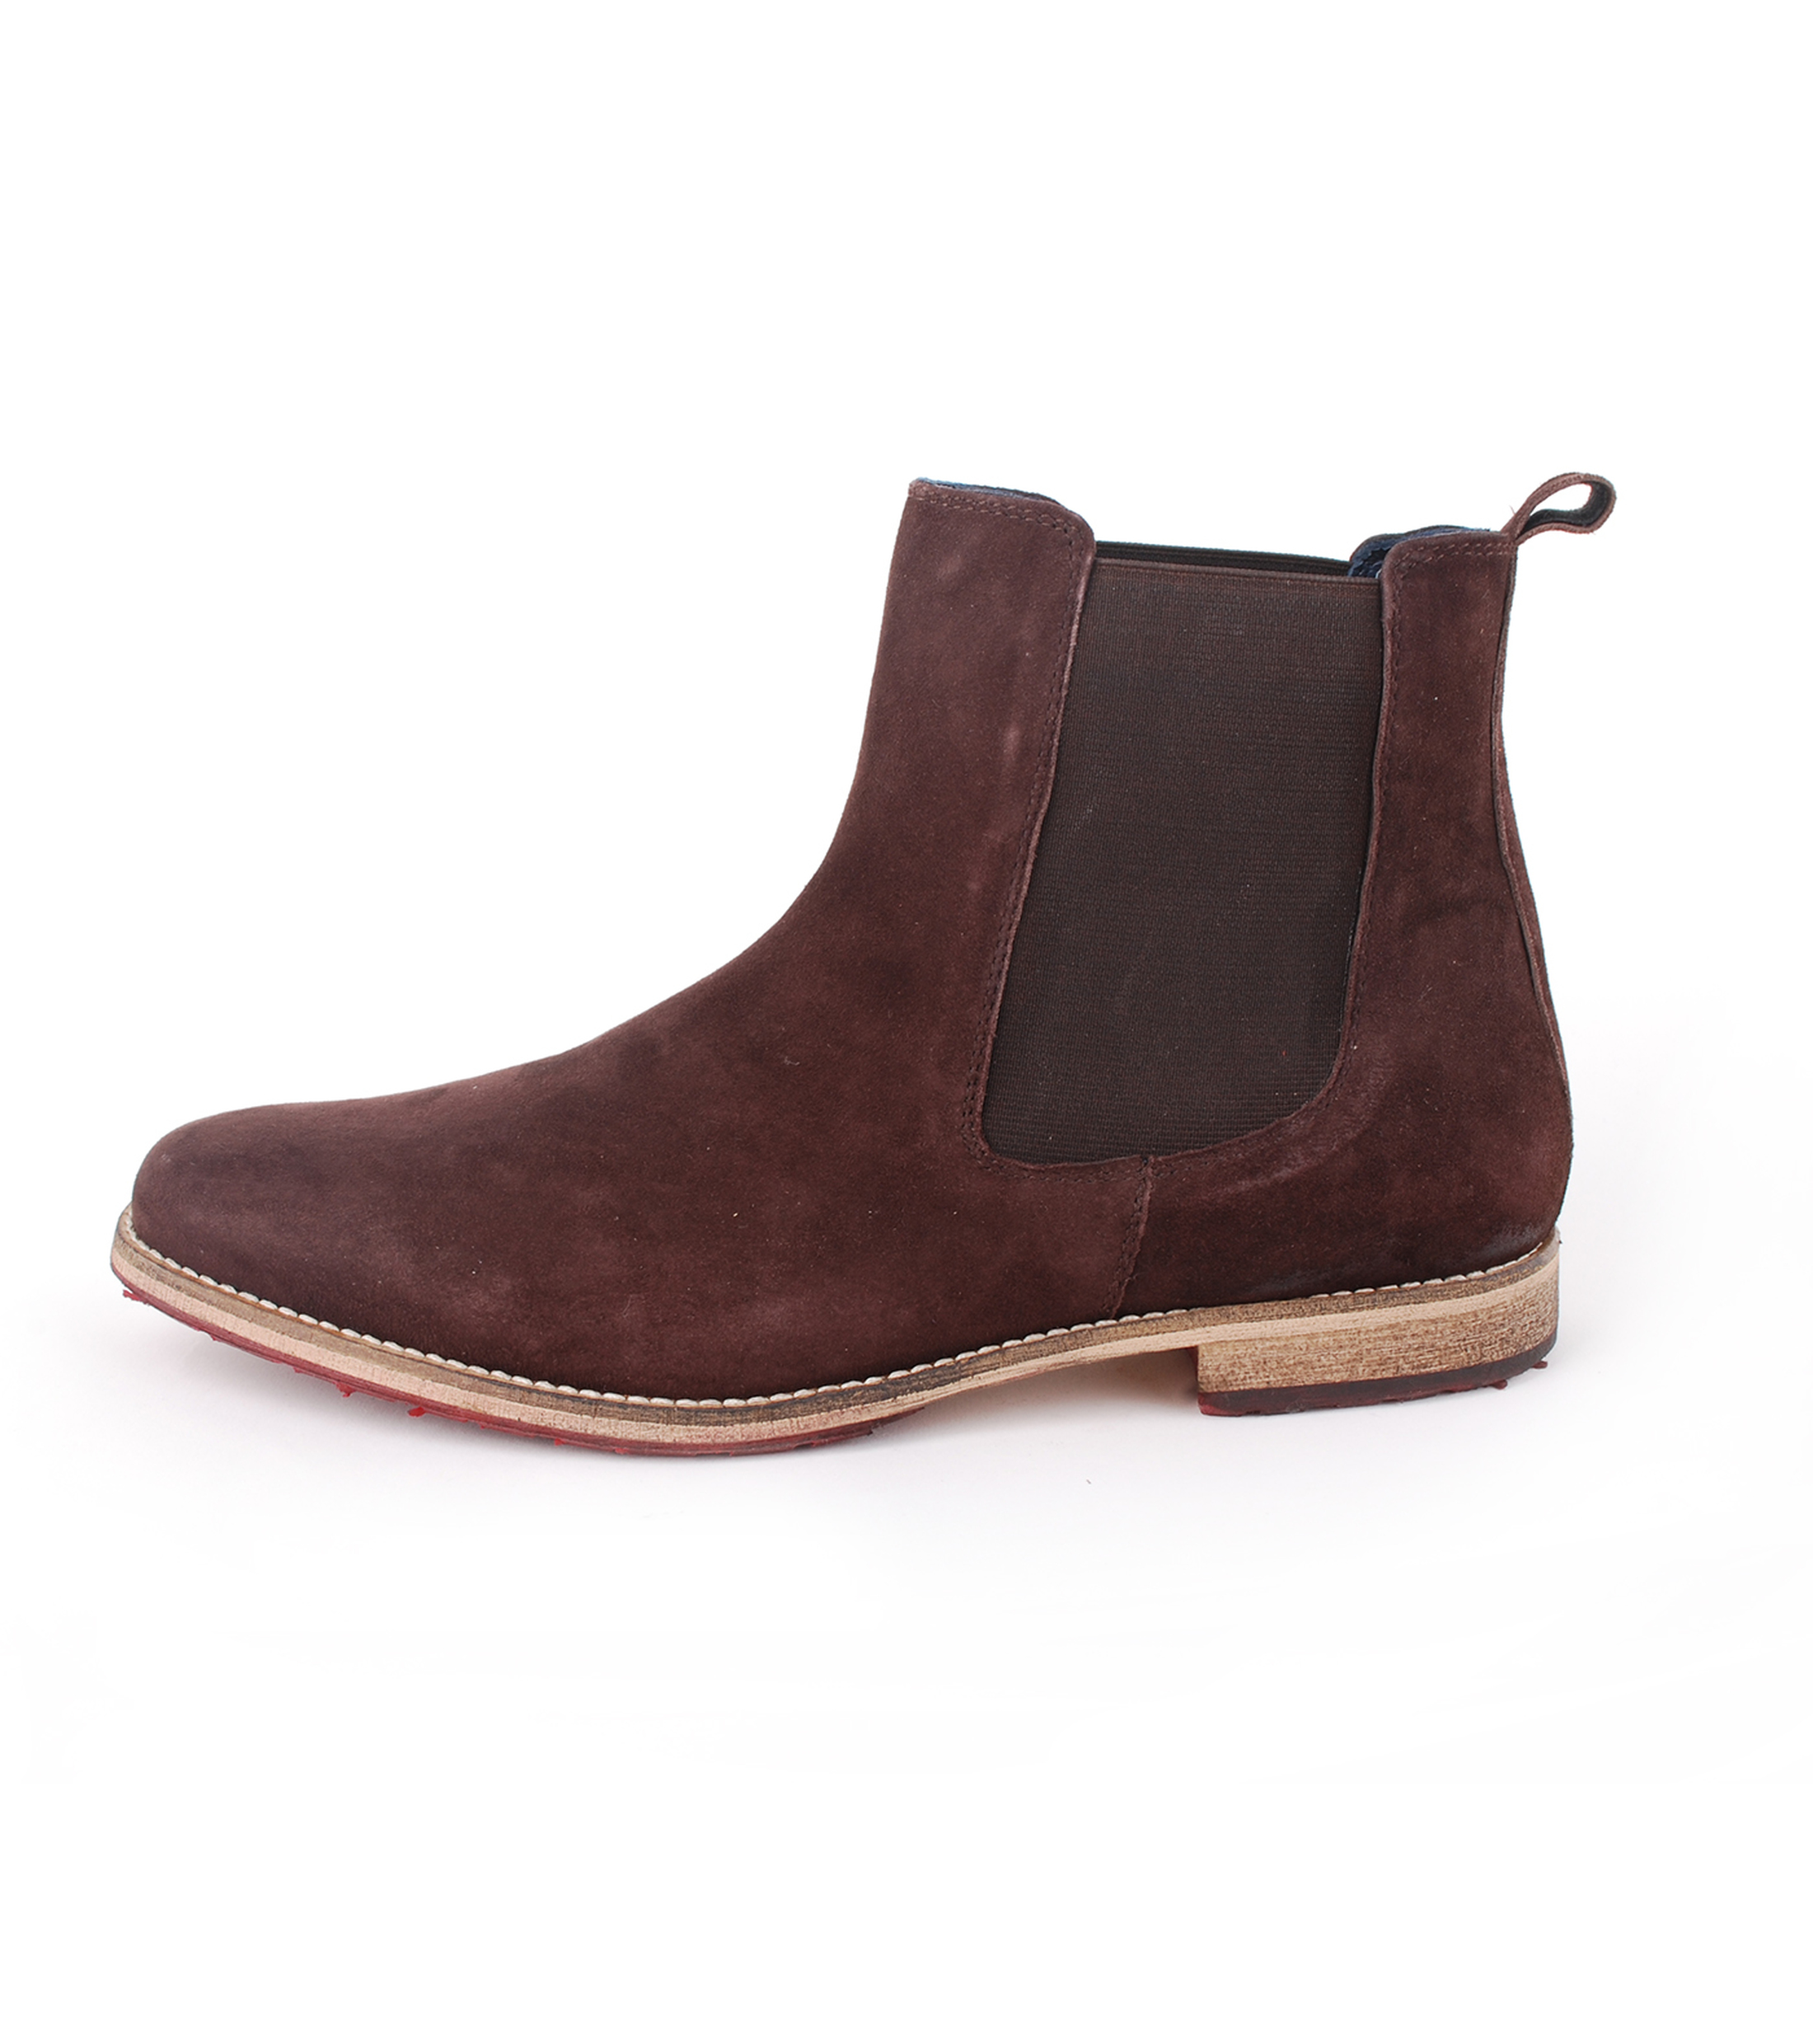 Suede Boots Chelsea Braun foto 2